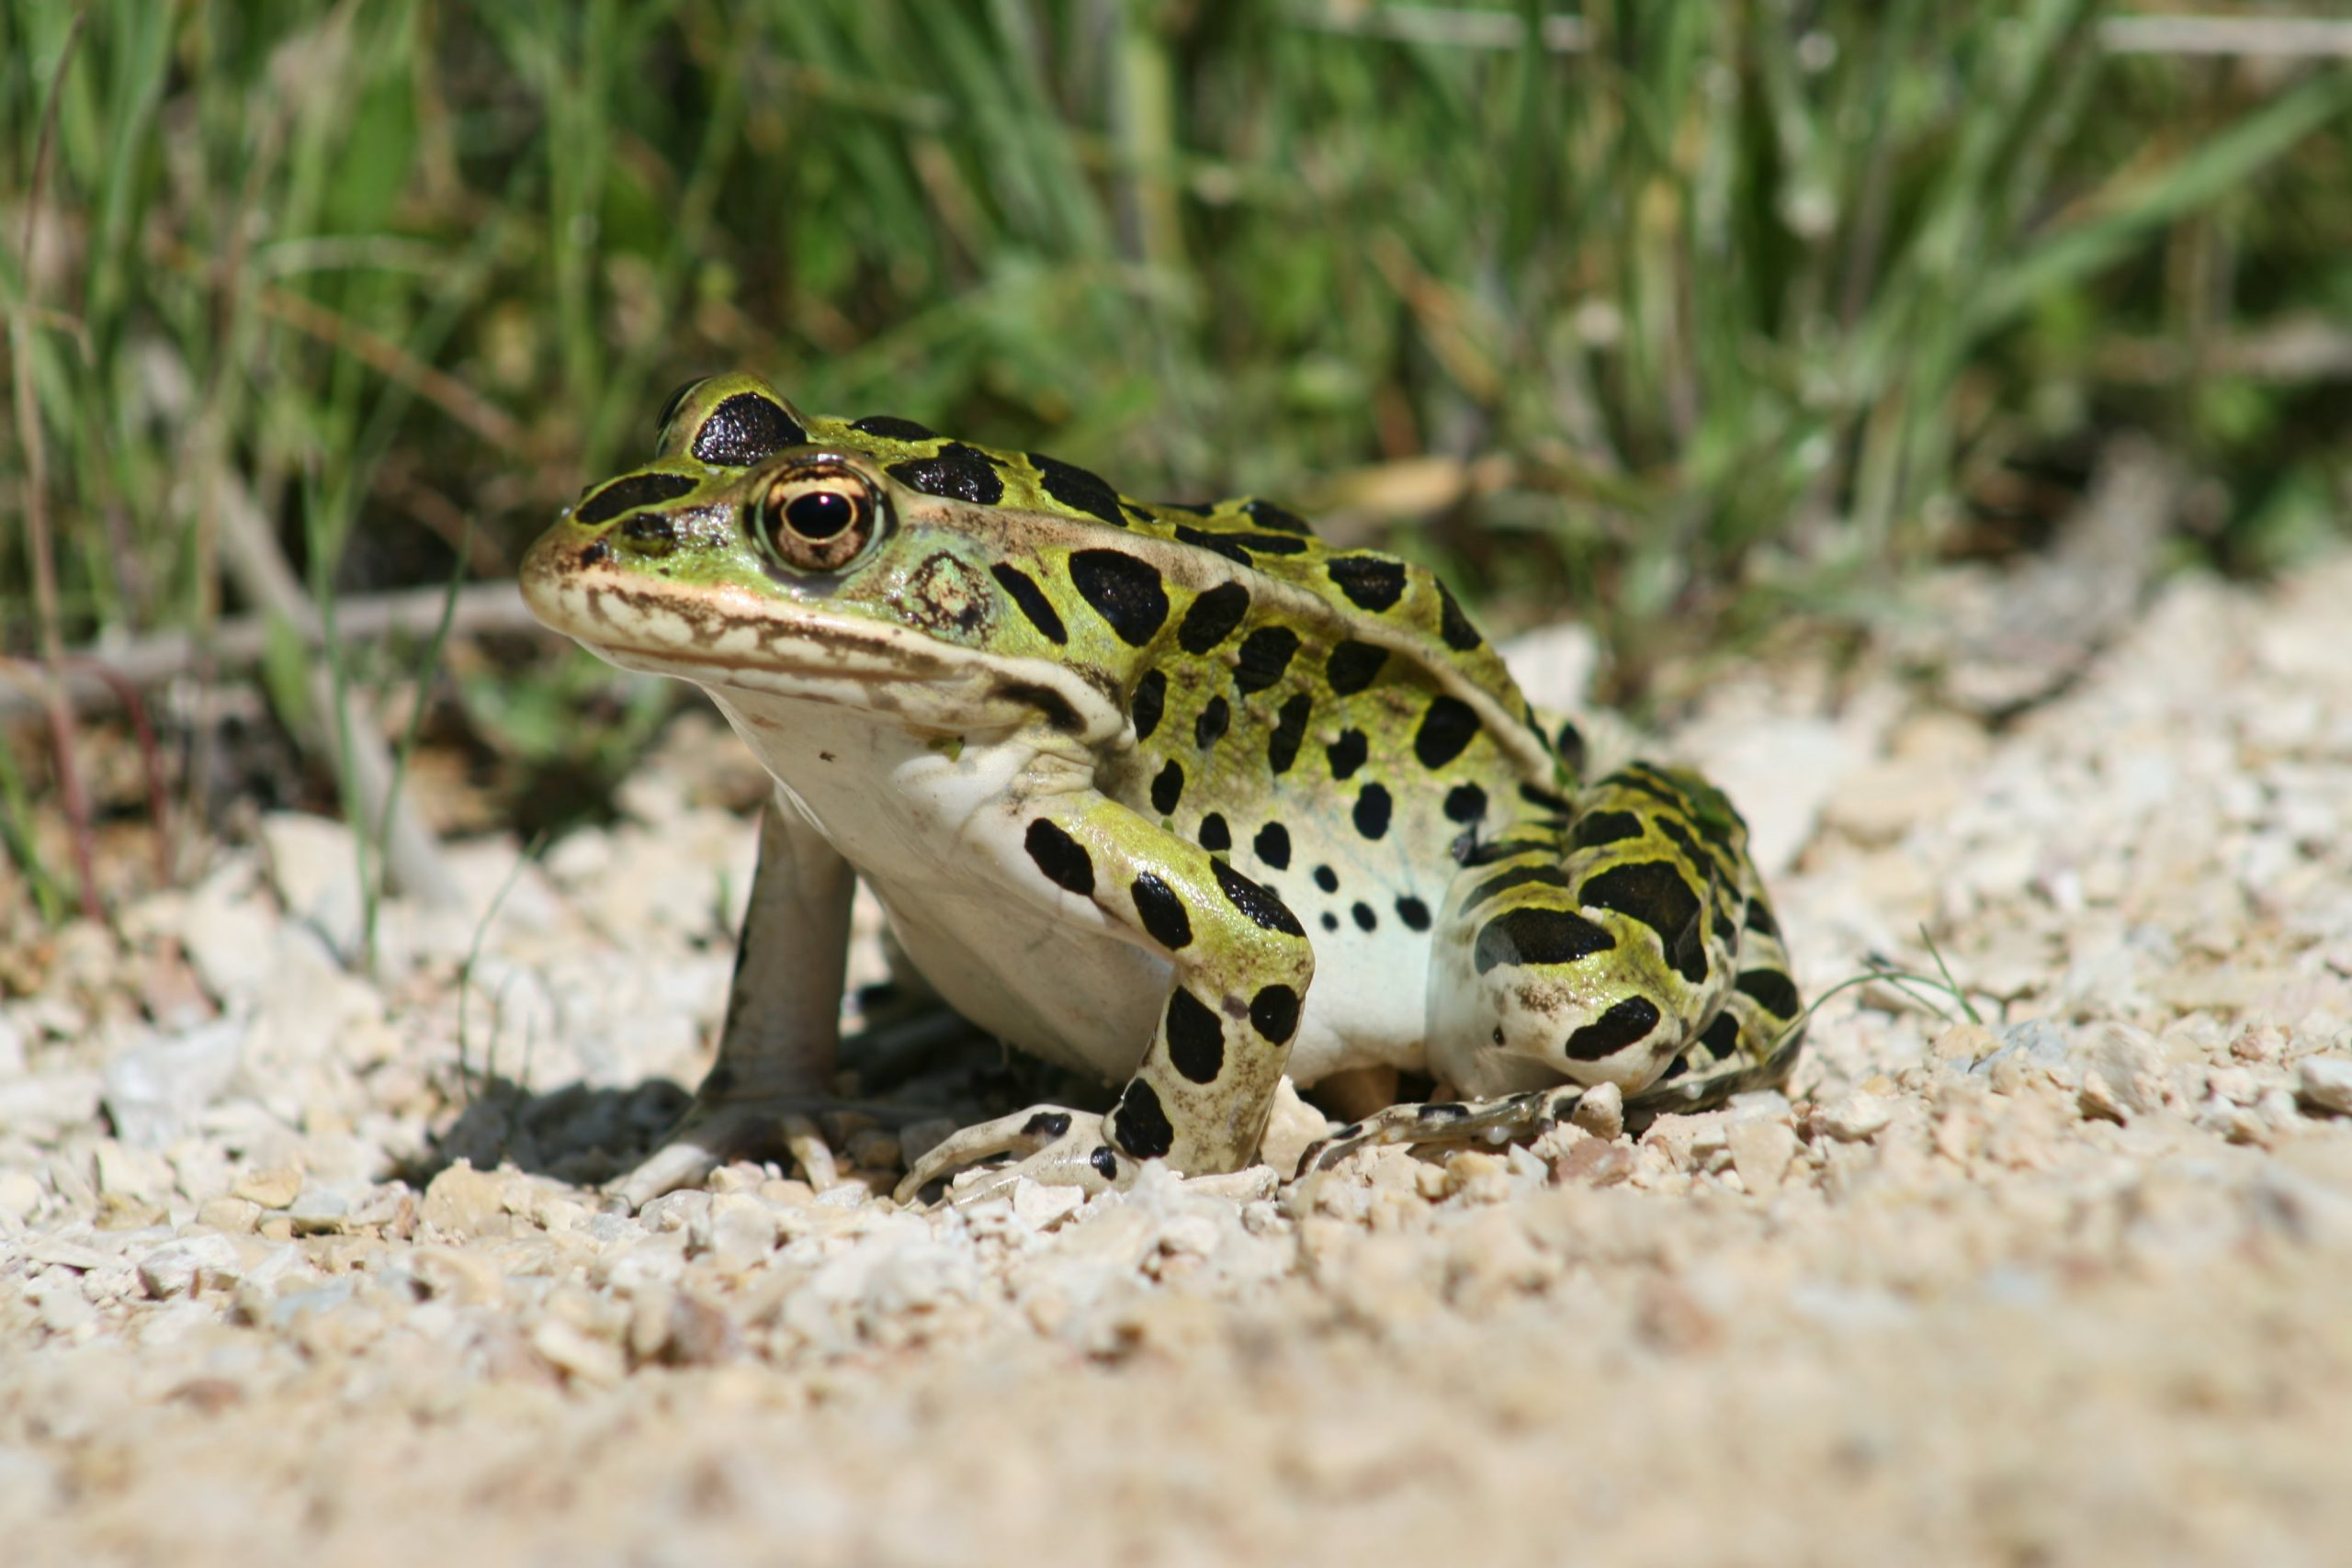 A leopard frog sitting on gravel and grass